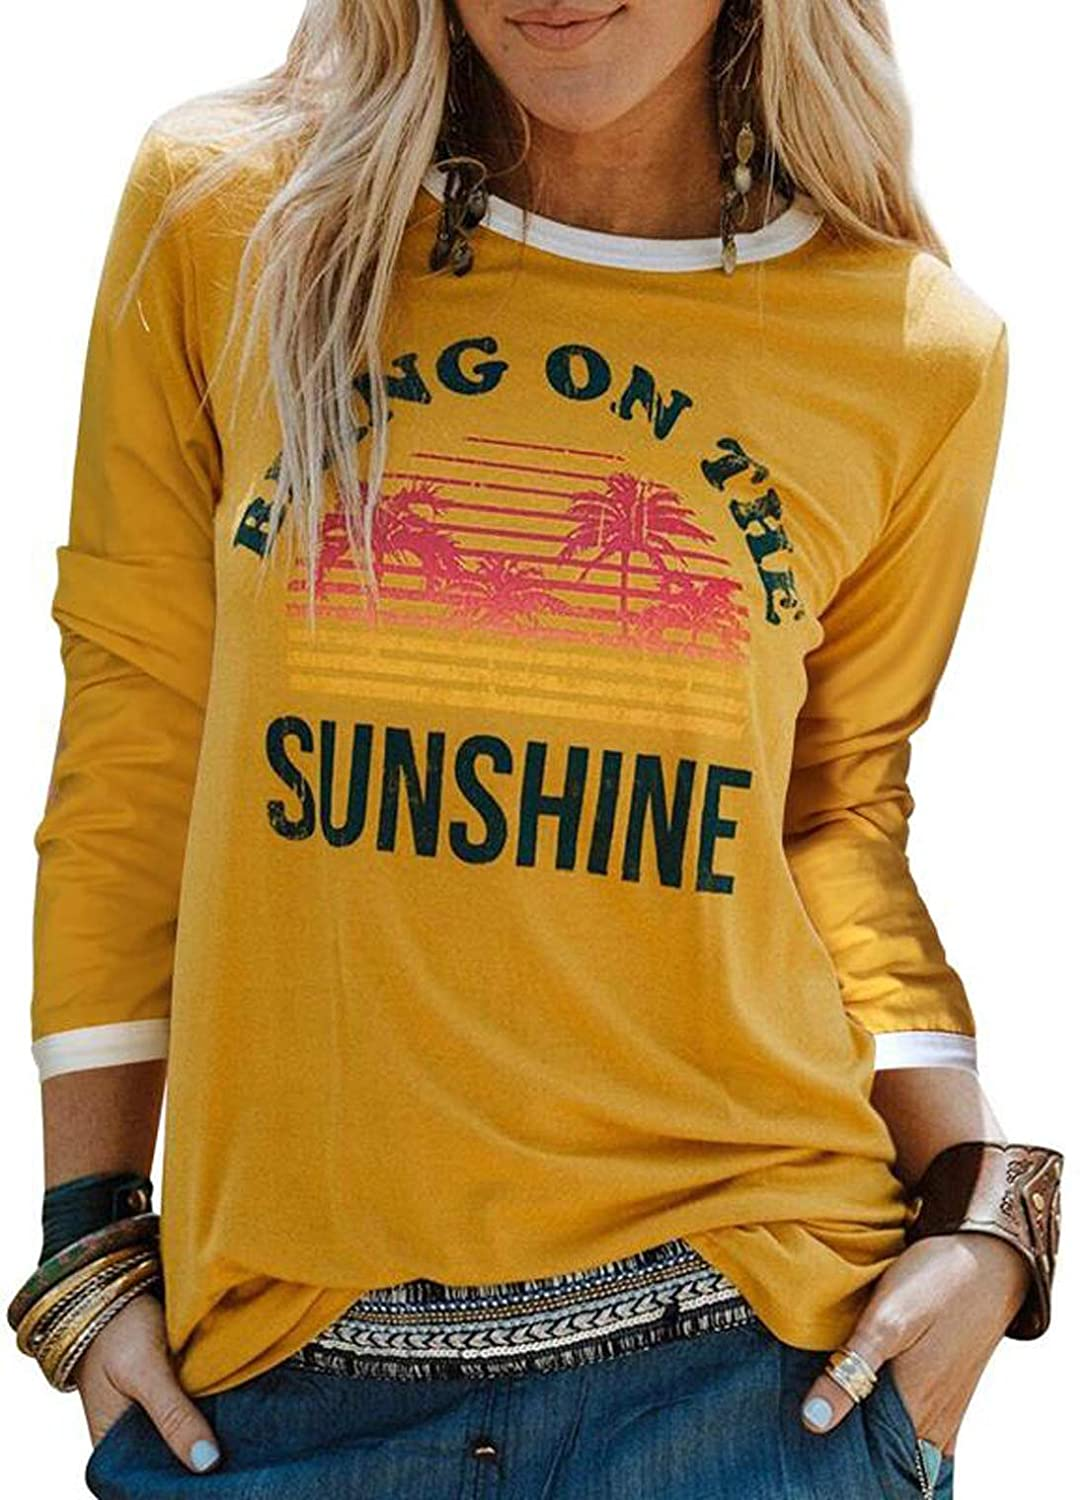 bd25abf9b Amazon.com: Women Graphic T-Shirt Bring On The Sunshine Letters Short  Sleeve Casual Tee Tops: Clothing